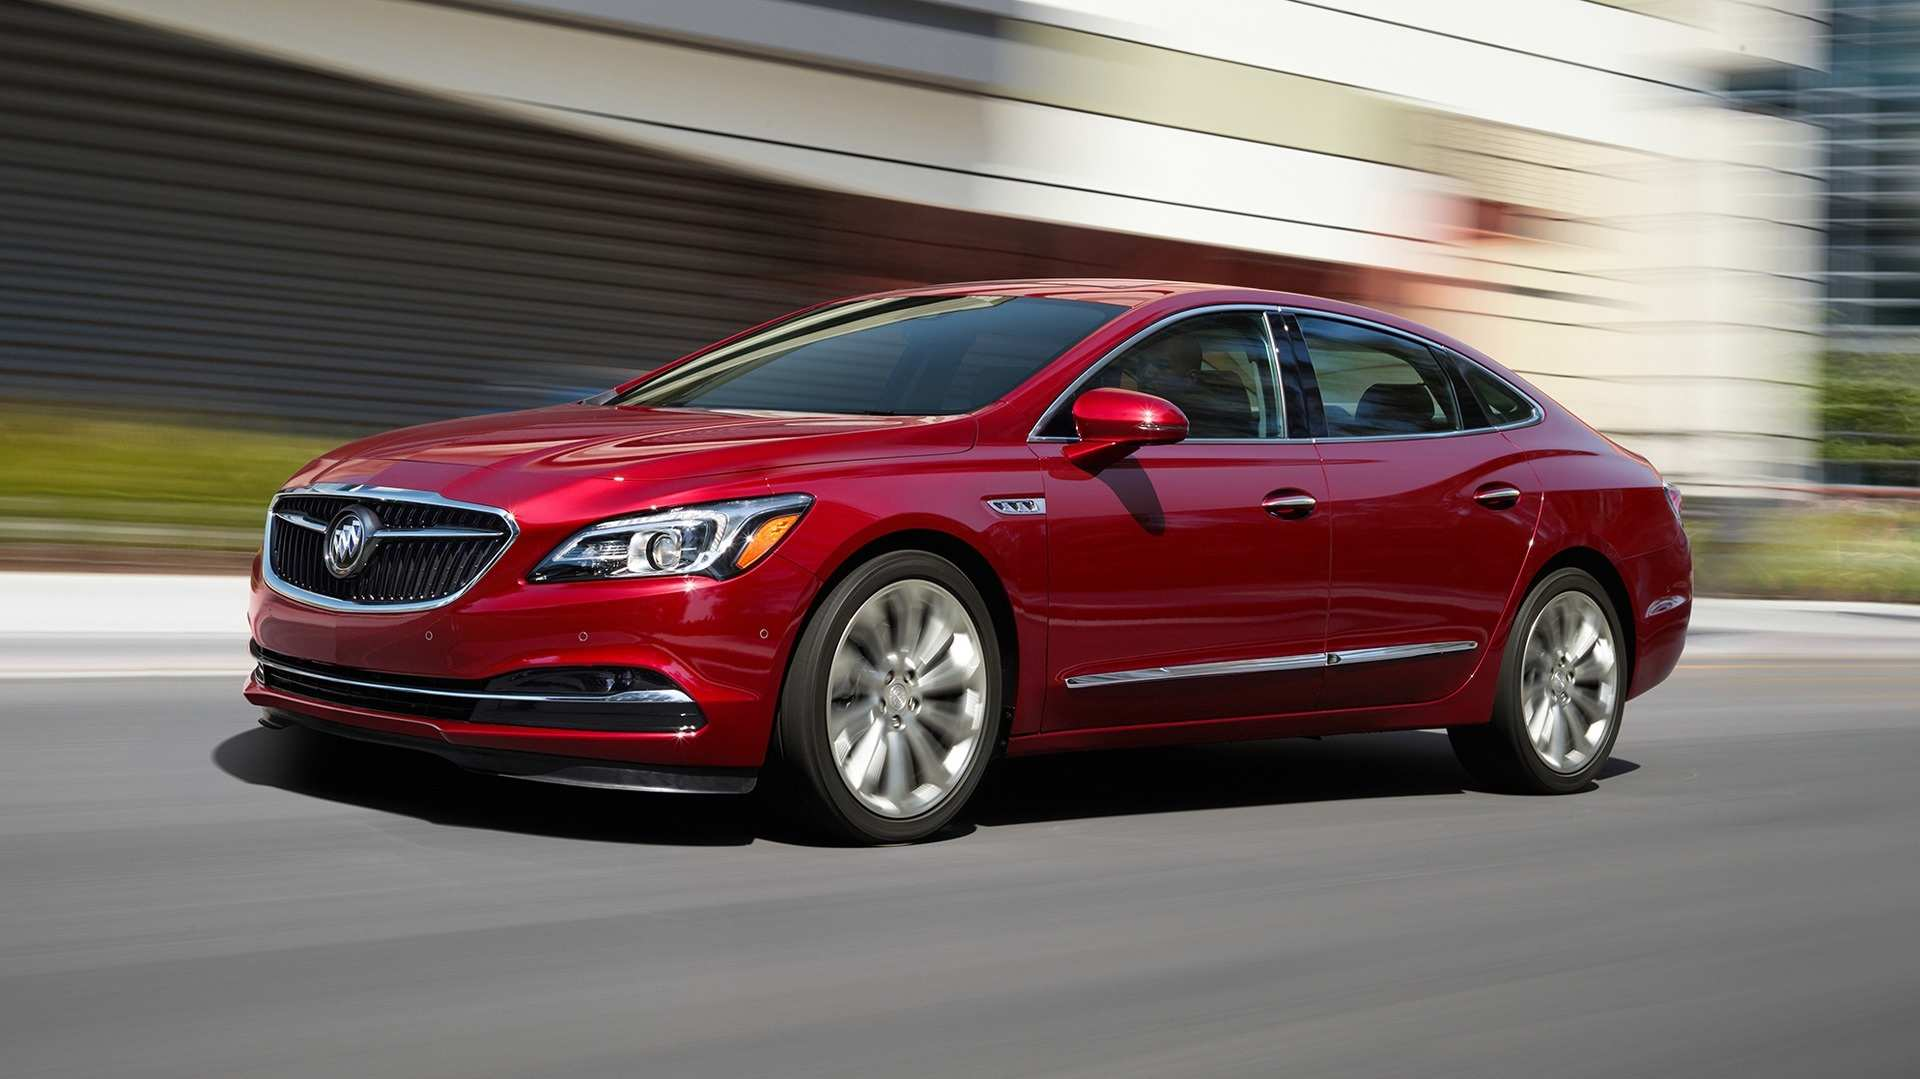 44 A Will There Be A 2020 Buick Lacrosse Ratings